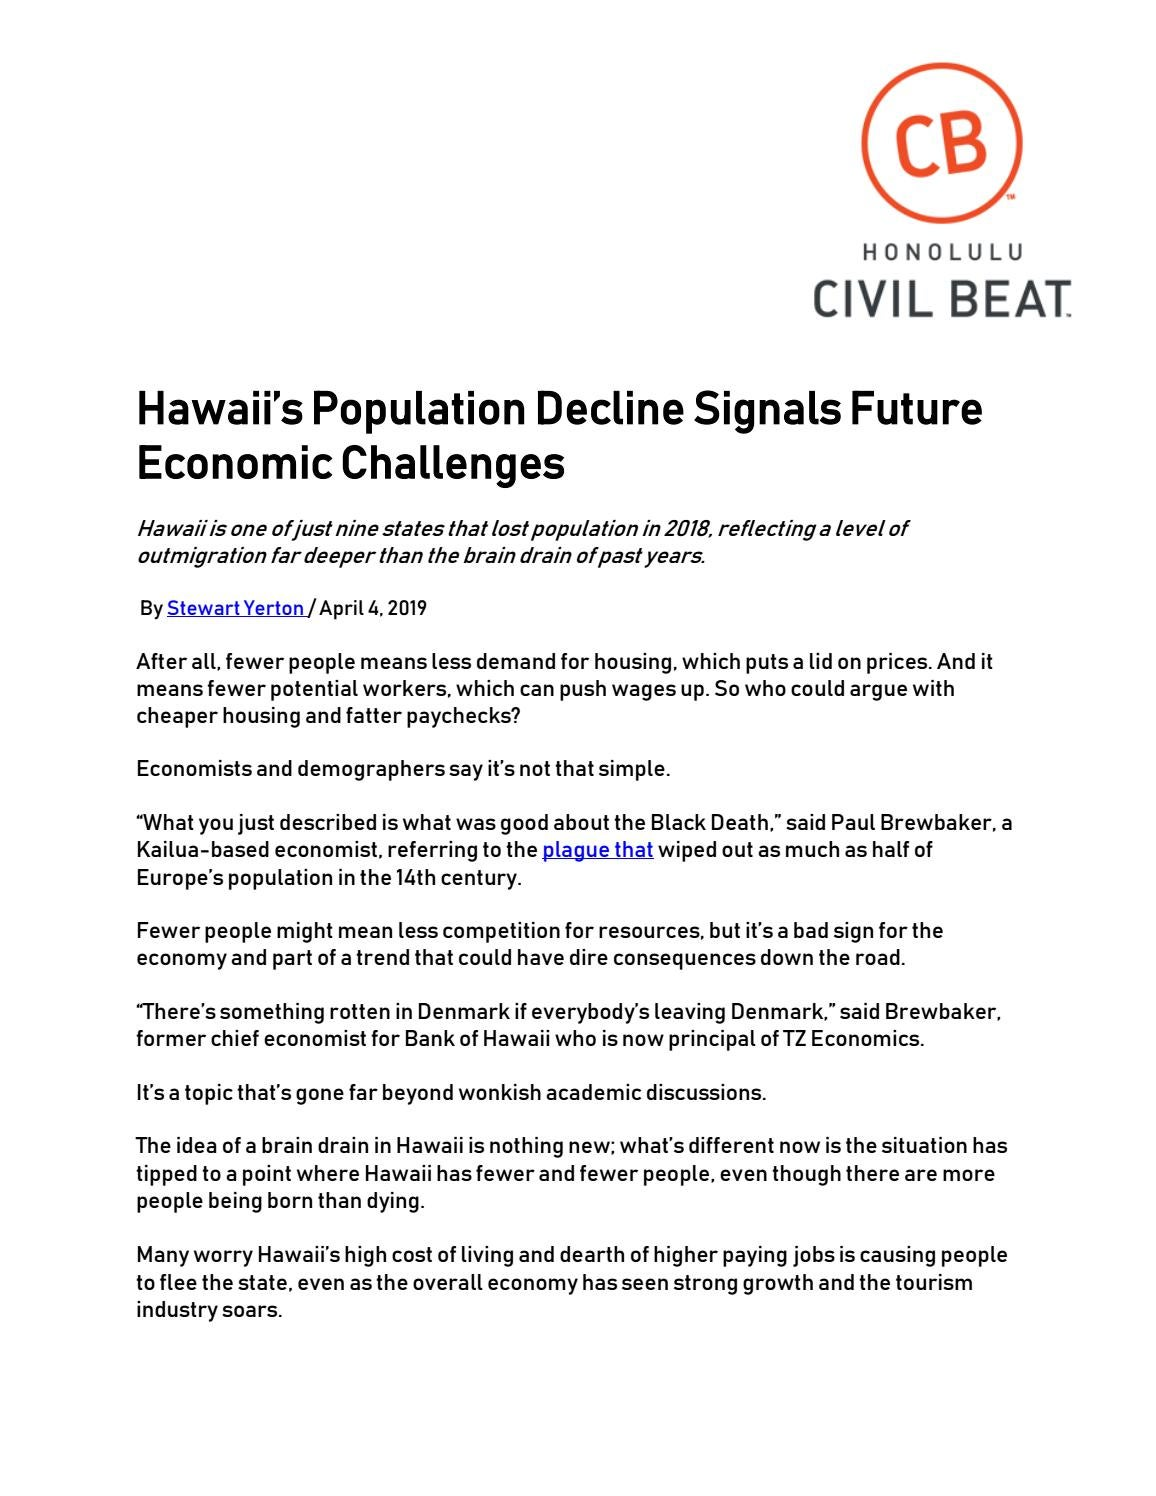 Hawaiis Population Decline Signals Future Economic Challenges